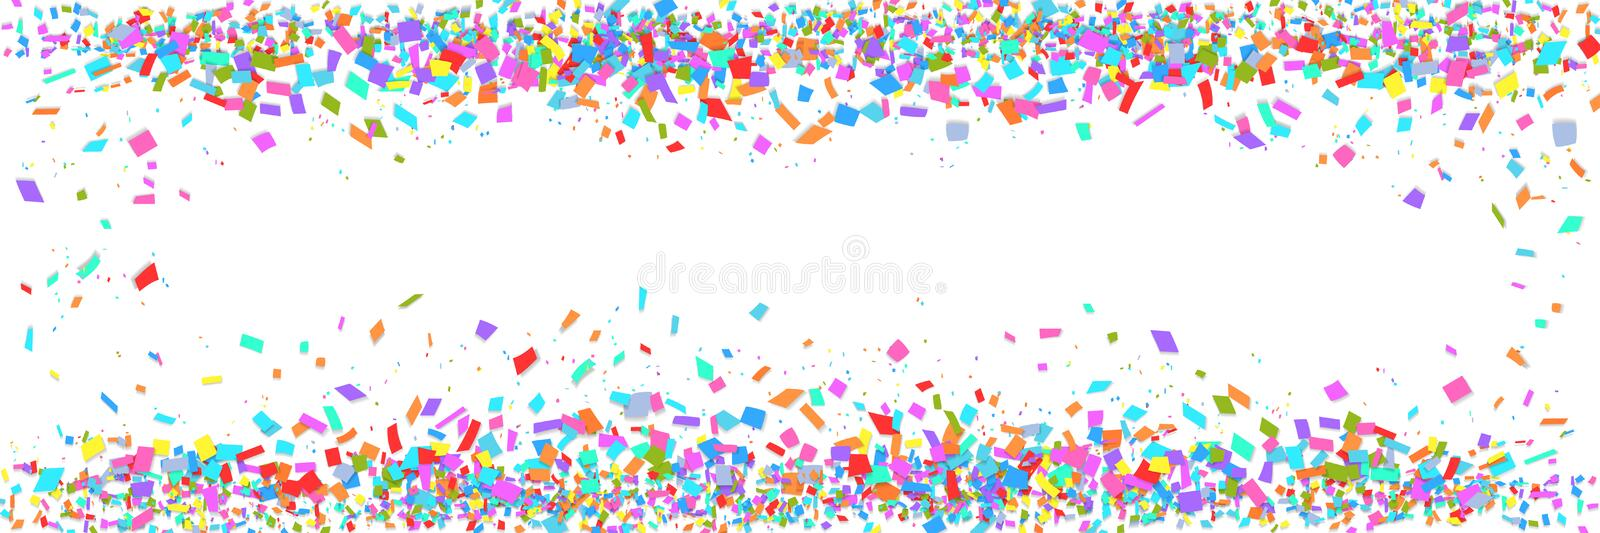 Colorful confetti border isolated on white background with copy space. Abstract frame template for holiday banner, birthday. Or children party, carnival vector illustration